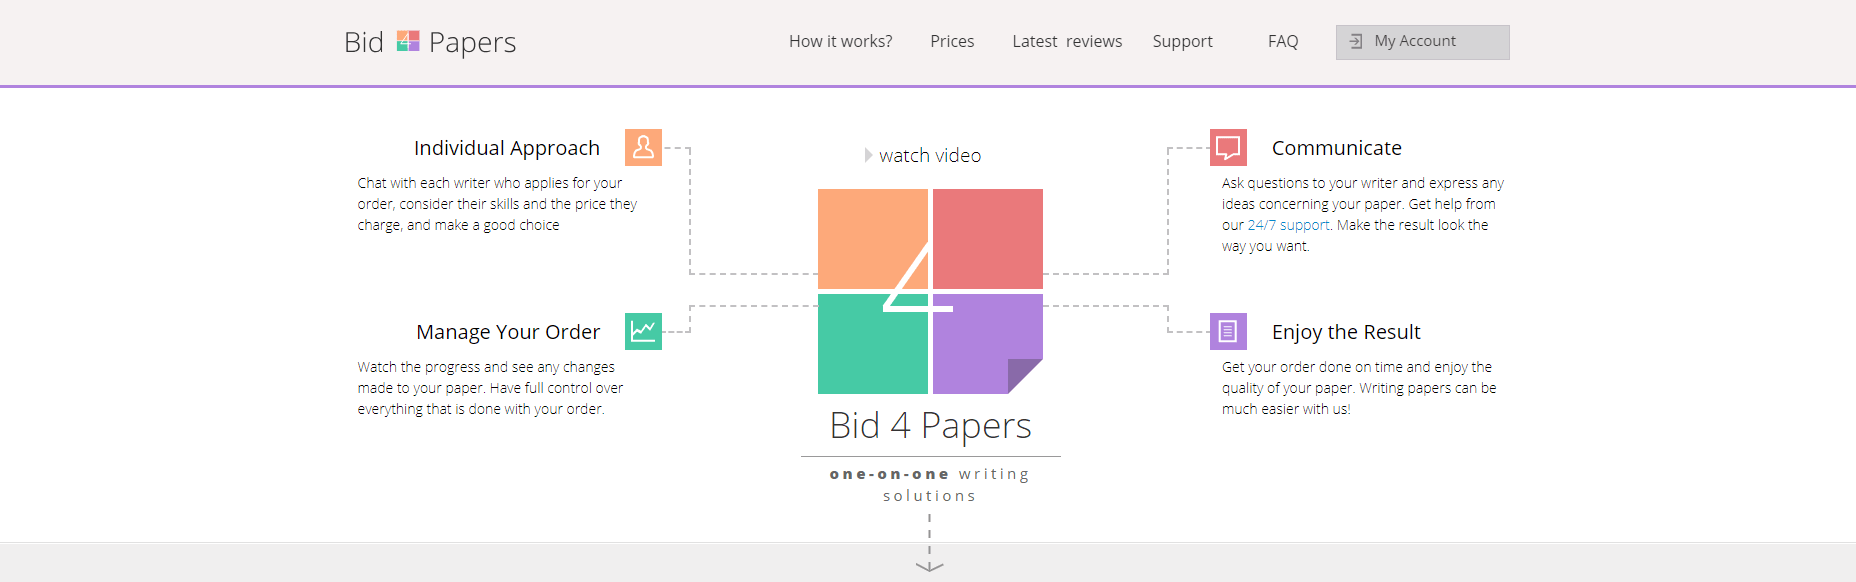 bid4papers review